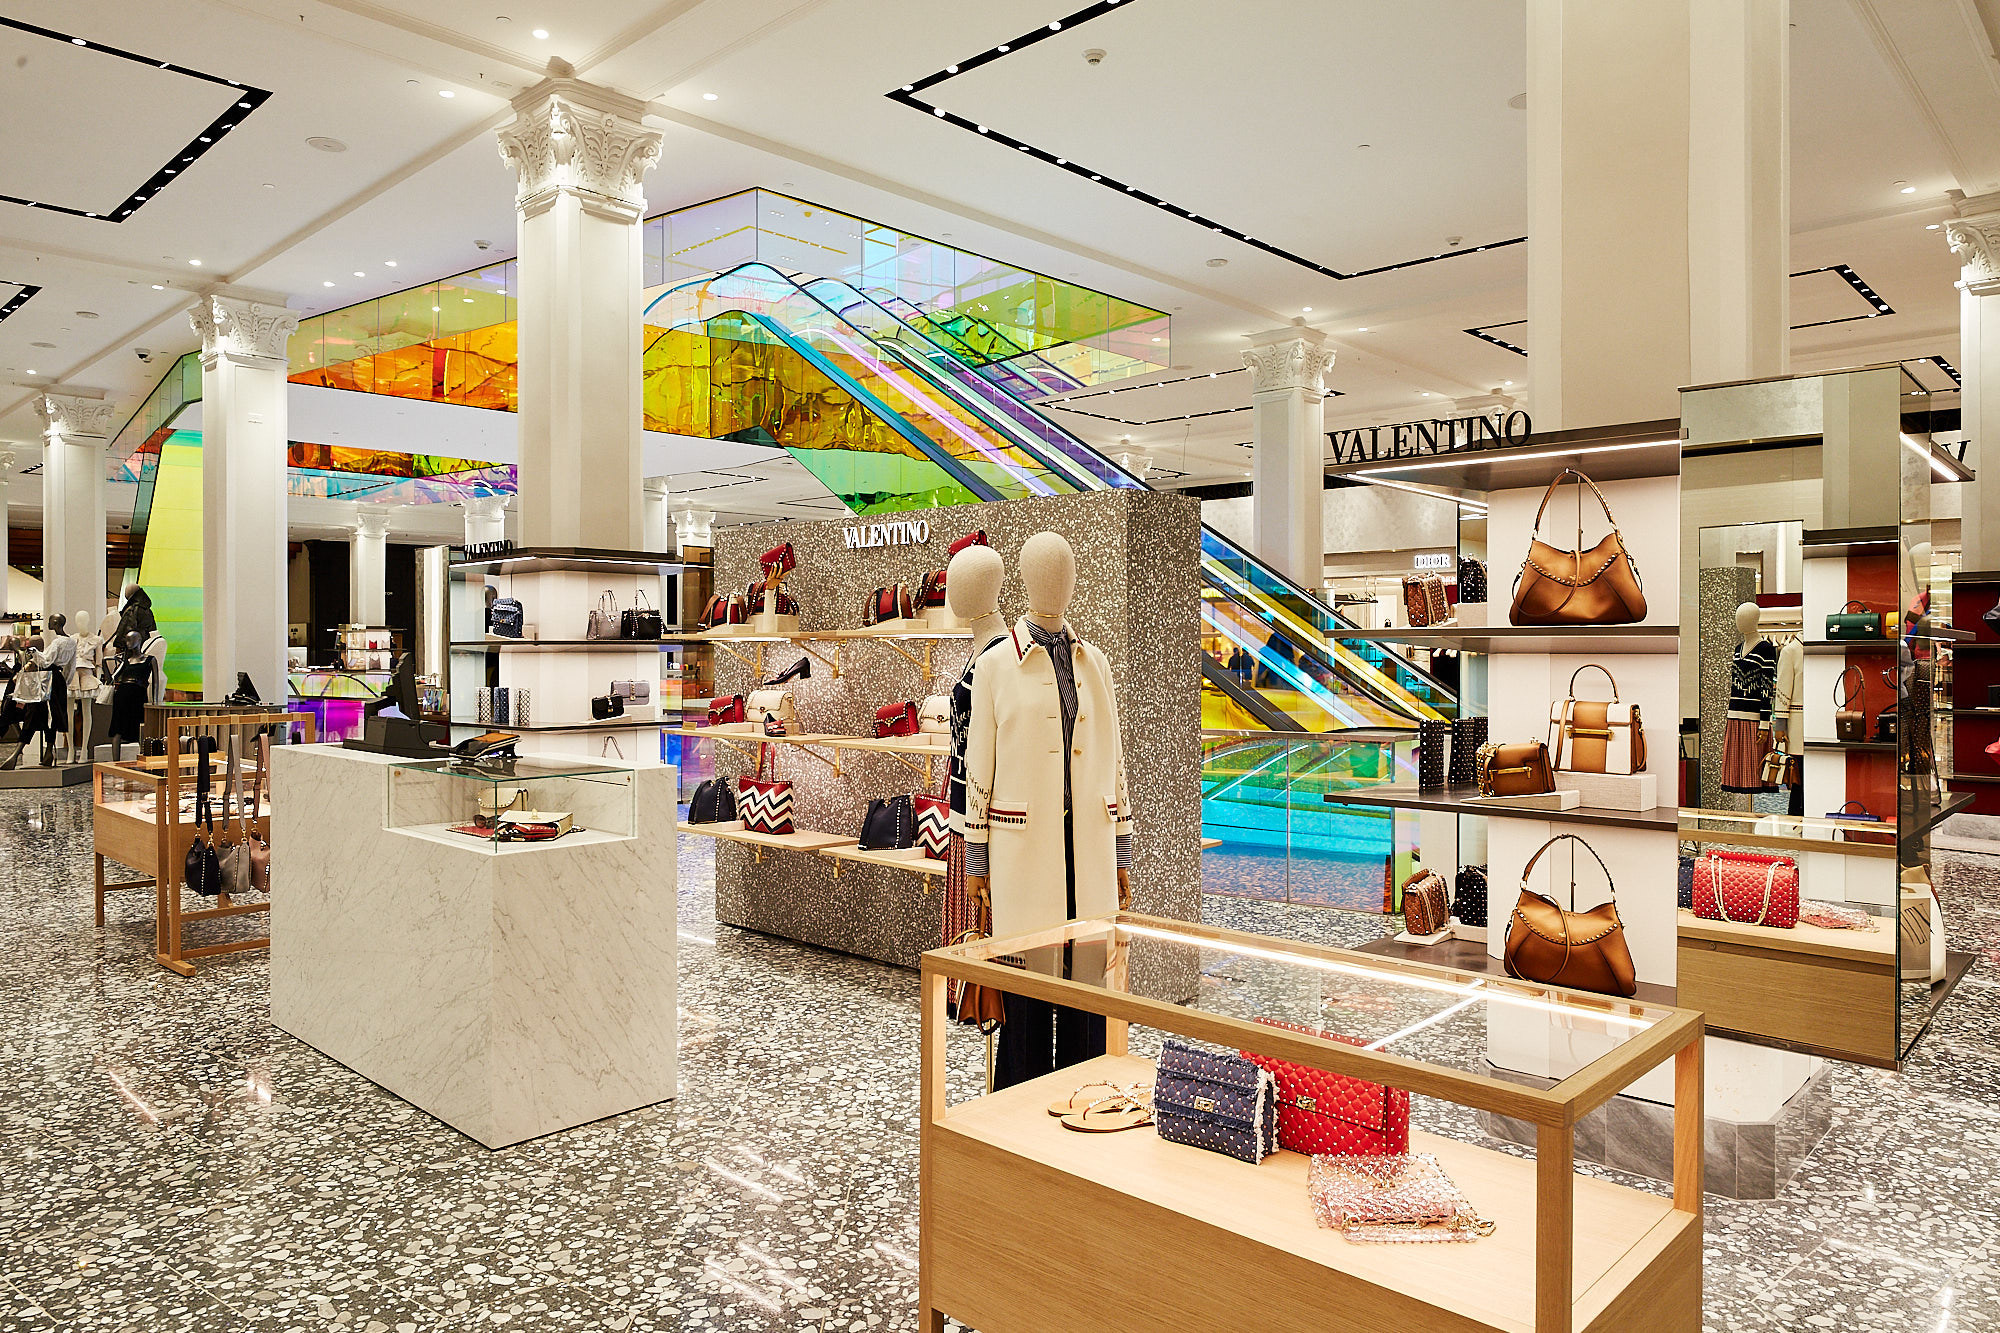 a7749d0a403 Saks Fifth Avenue Unveils New Main Floor, Latest Phase Of New York ...